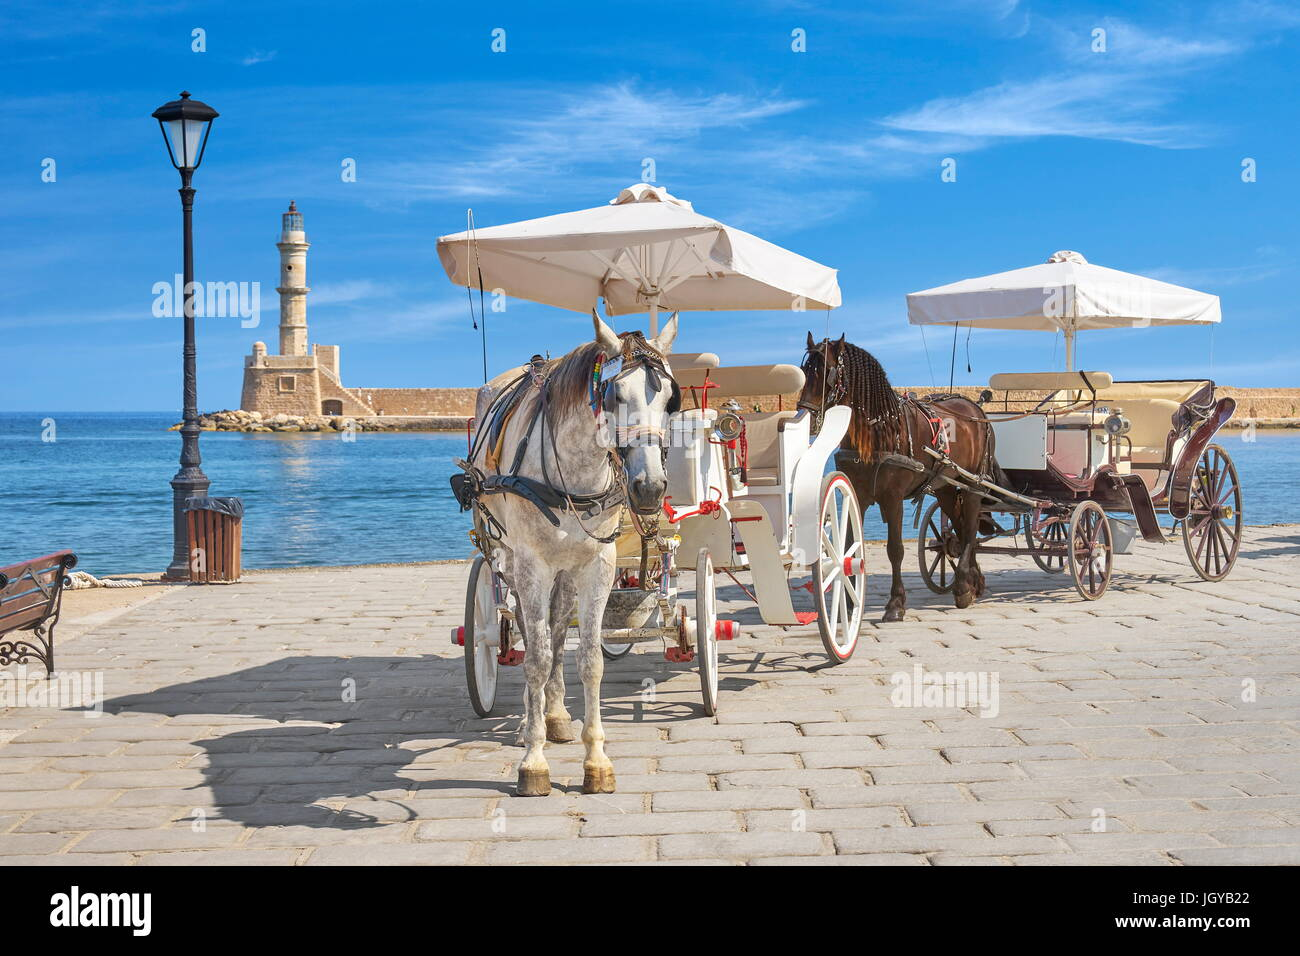 Carriage with horse, lighthouse in the background, Chania old town, Crete Island, Greece - Stock Image